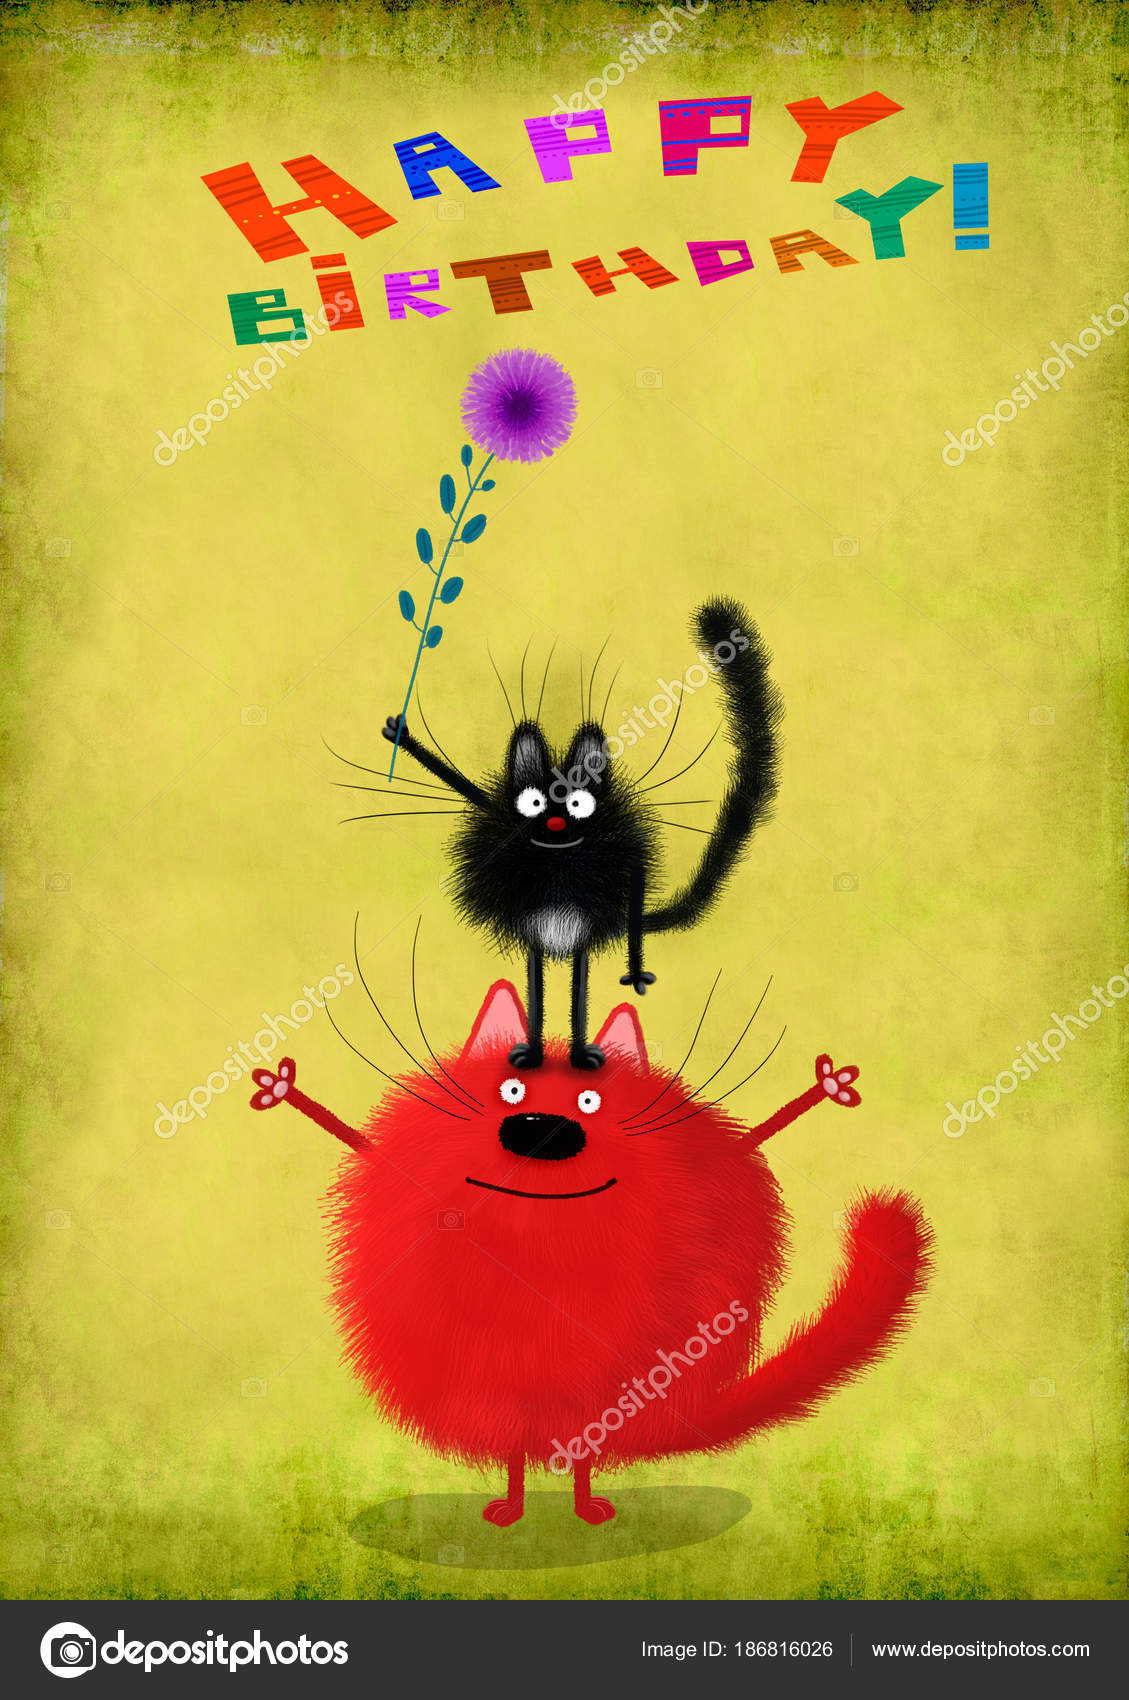 A Very Cute Birthday Card Two Funny Cats With Small Violet Flower Making Pyramid On The Gradient Lime Background Photo By Andrei Sikorskii